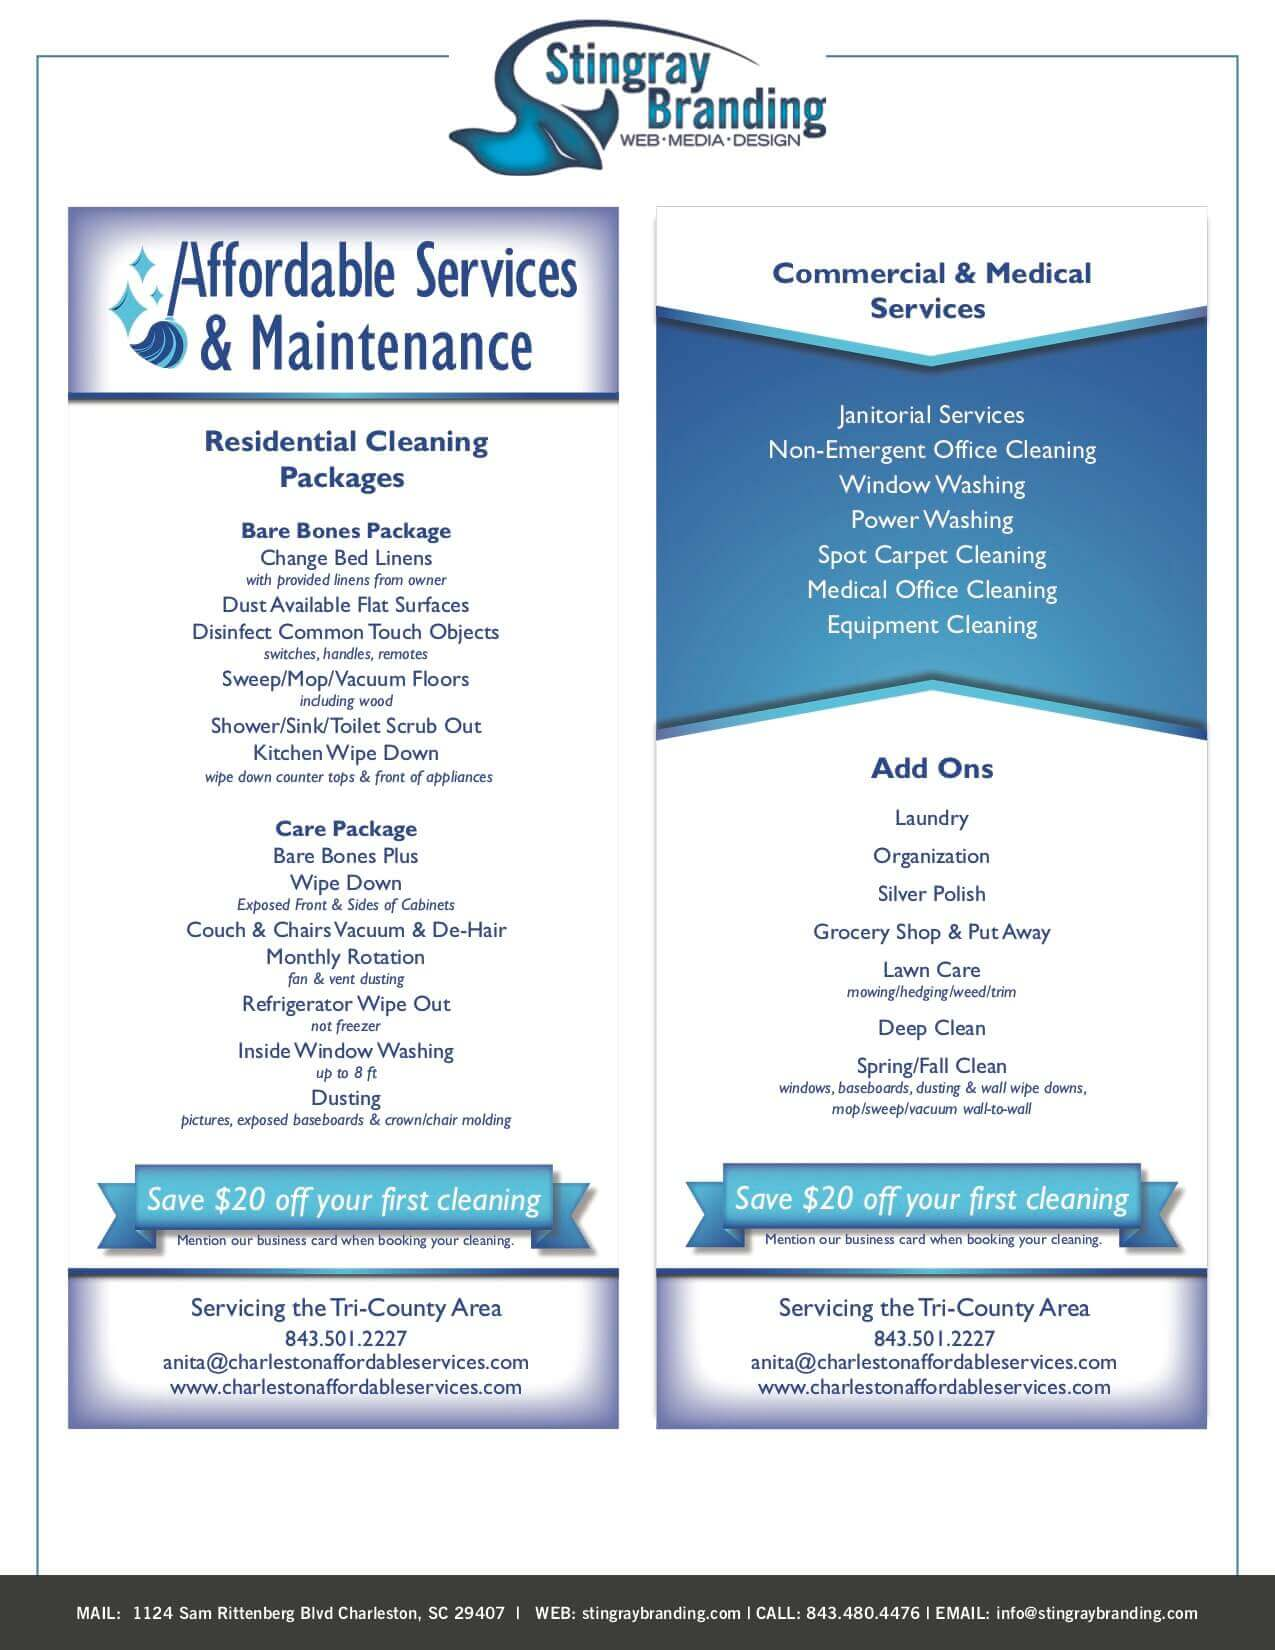 Affordable Services Rack Card